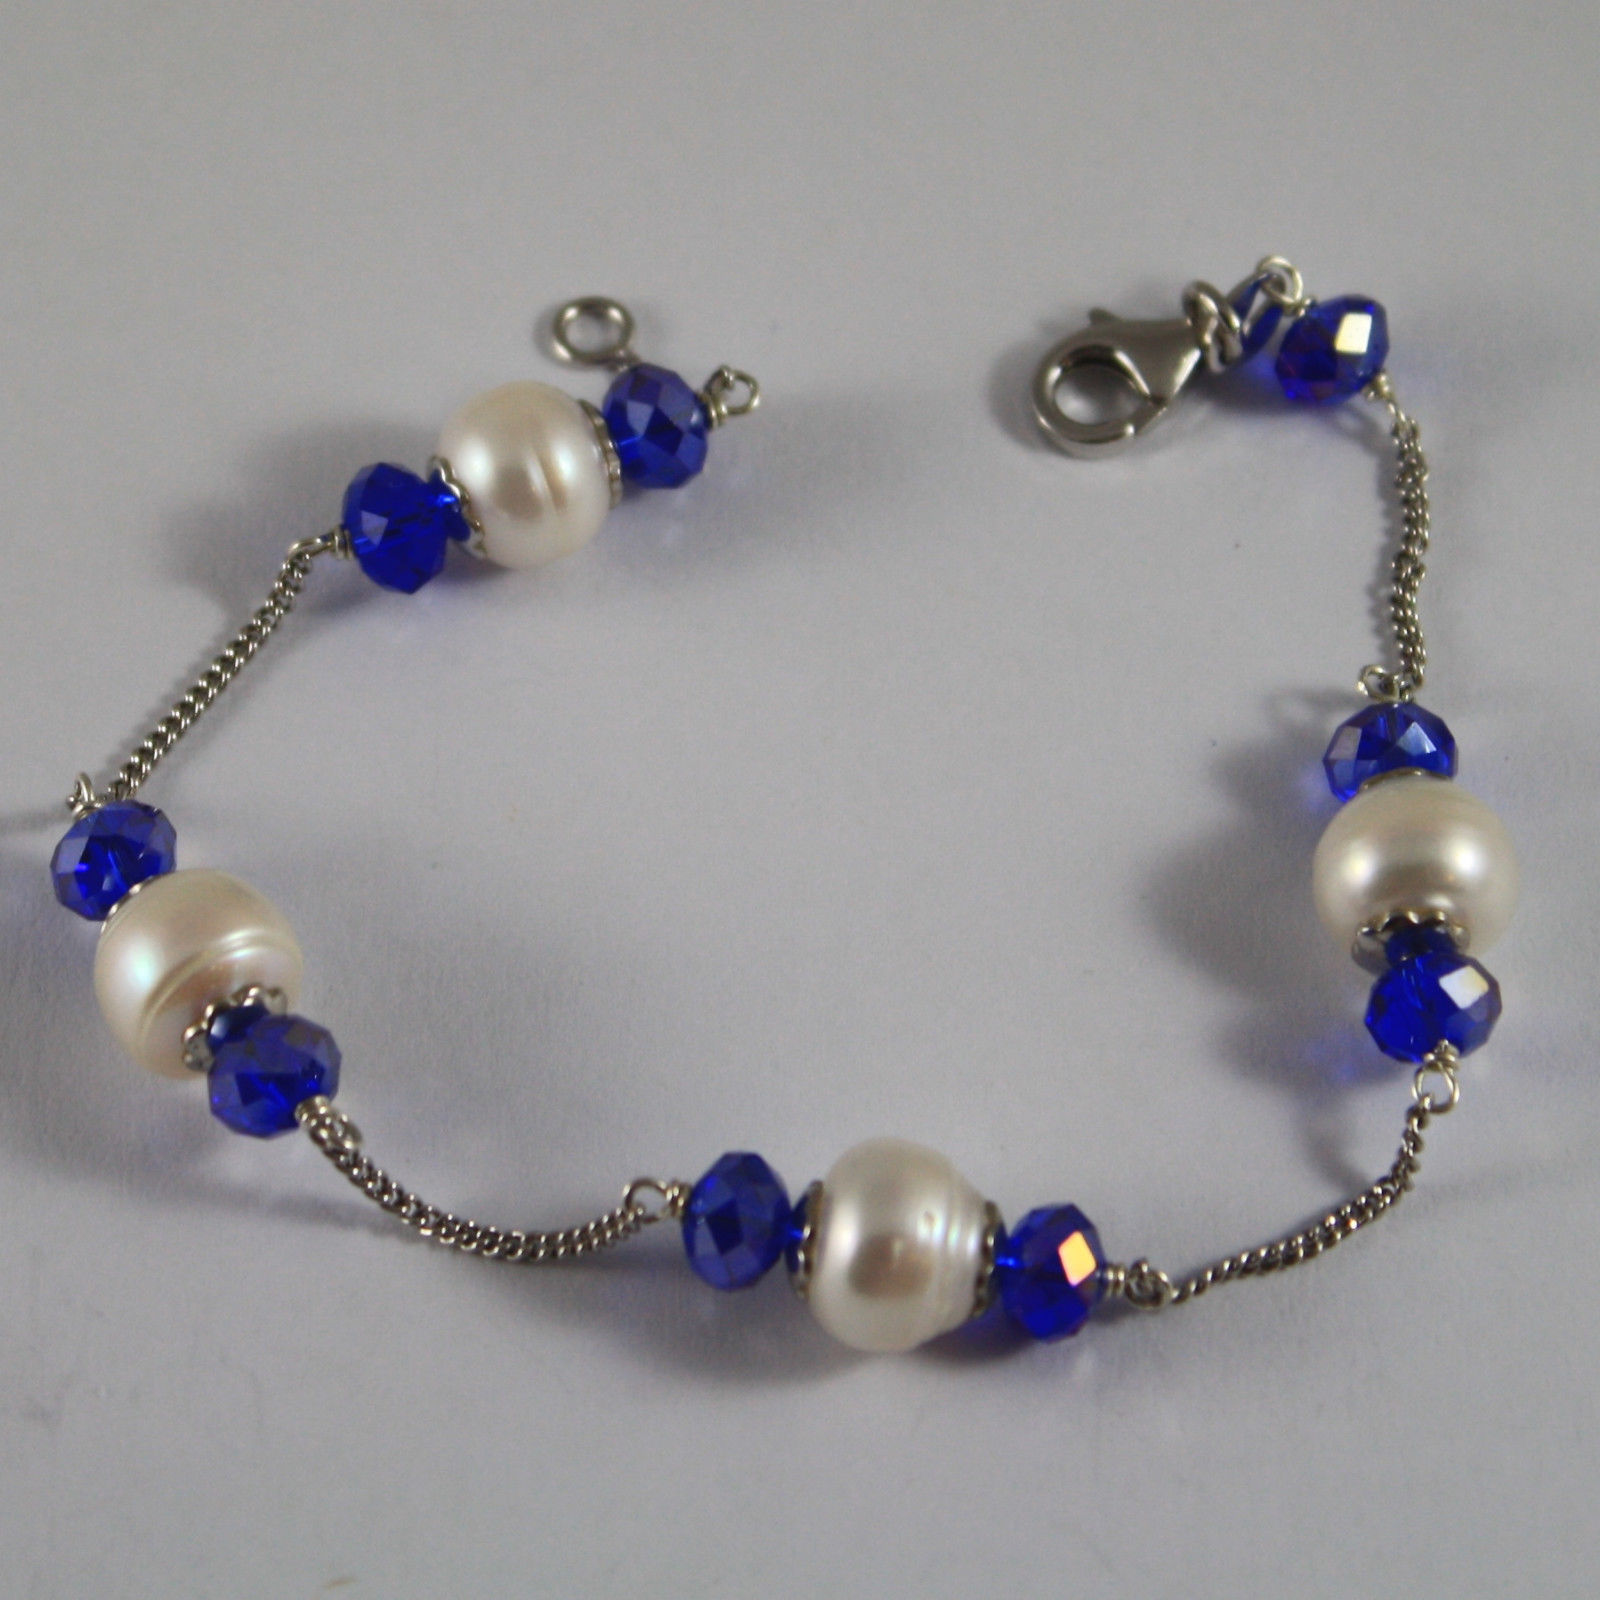 .925 RHODIUM SILVER BRACELET WITH BLUETTE CRYSTALS AND WHITE PEARLS